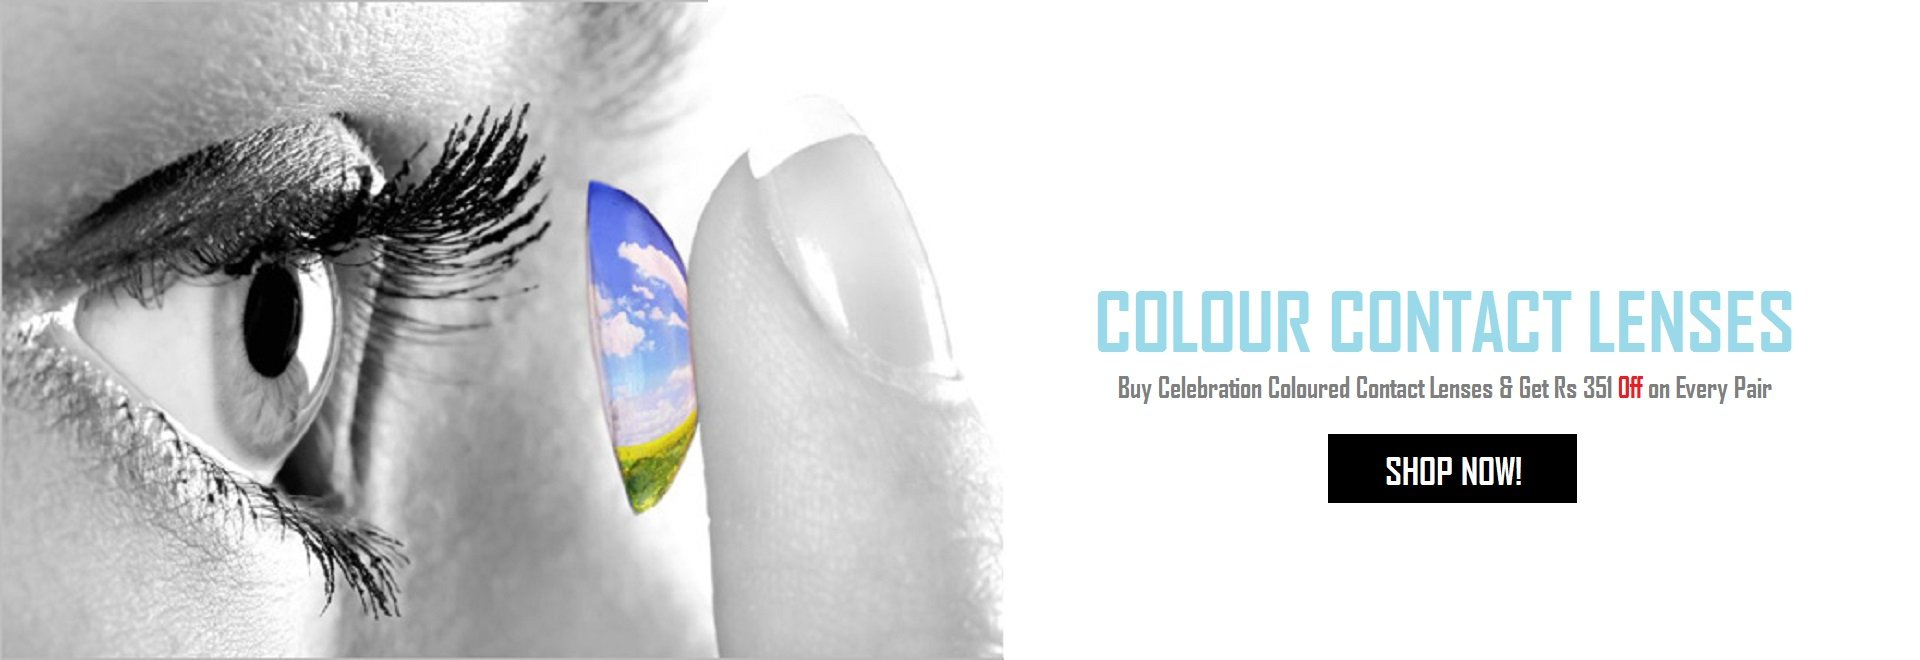 Buy Celebration Coloured Contact Lenses & Get Rs 351 Off on Every Pair